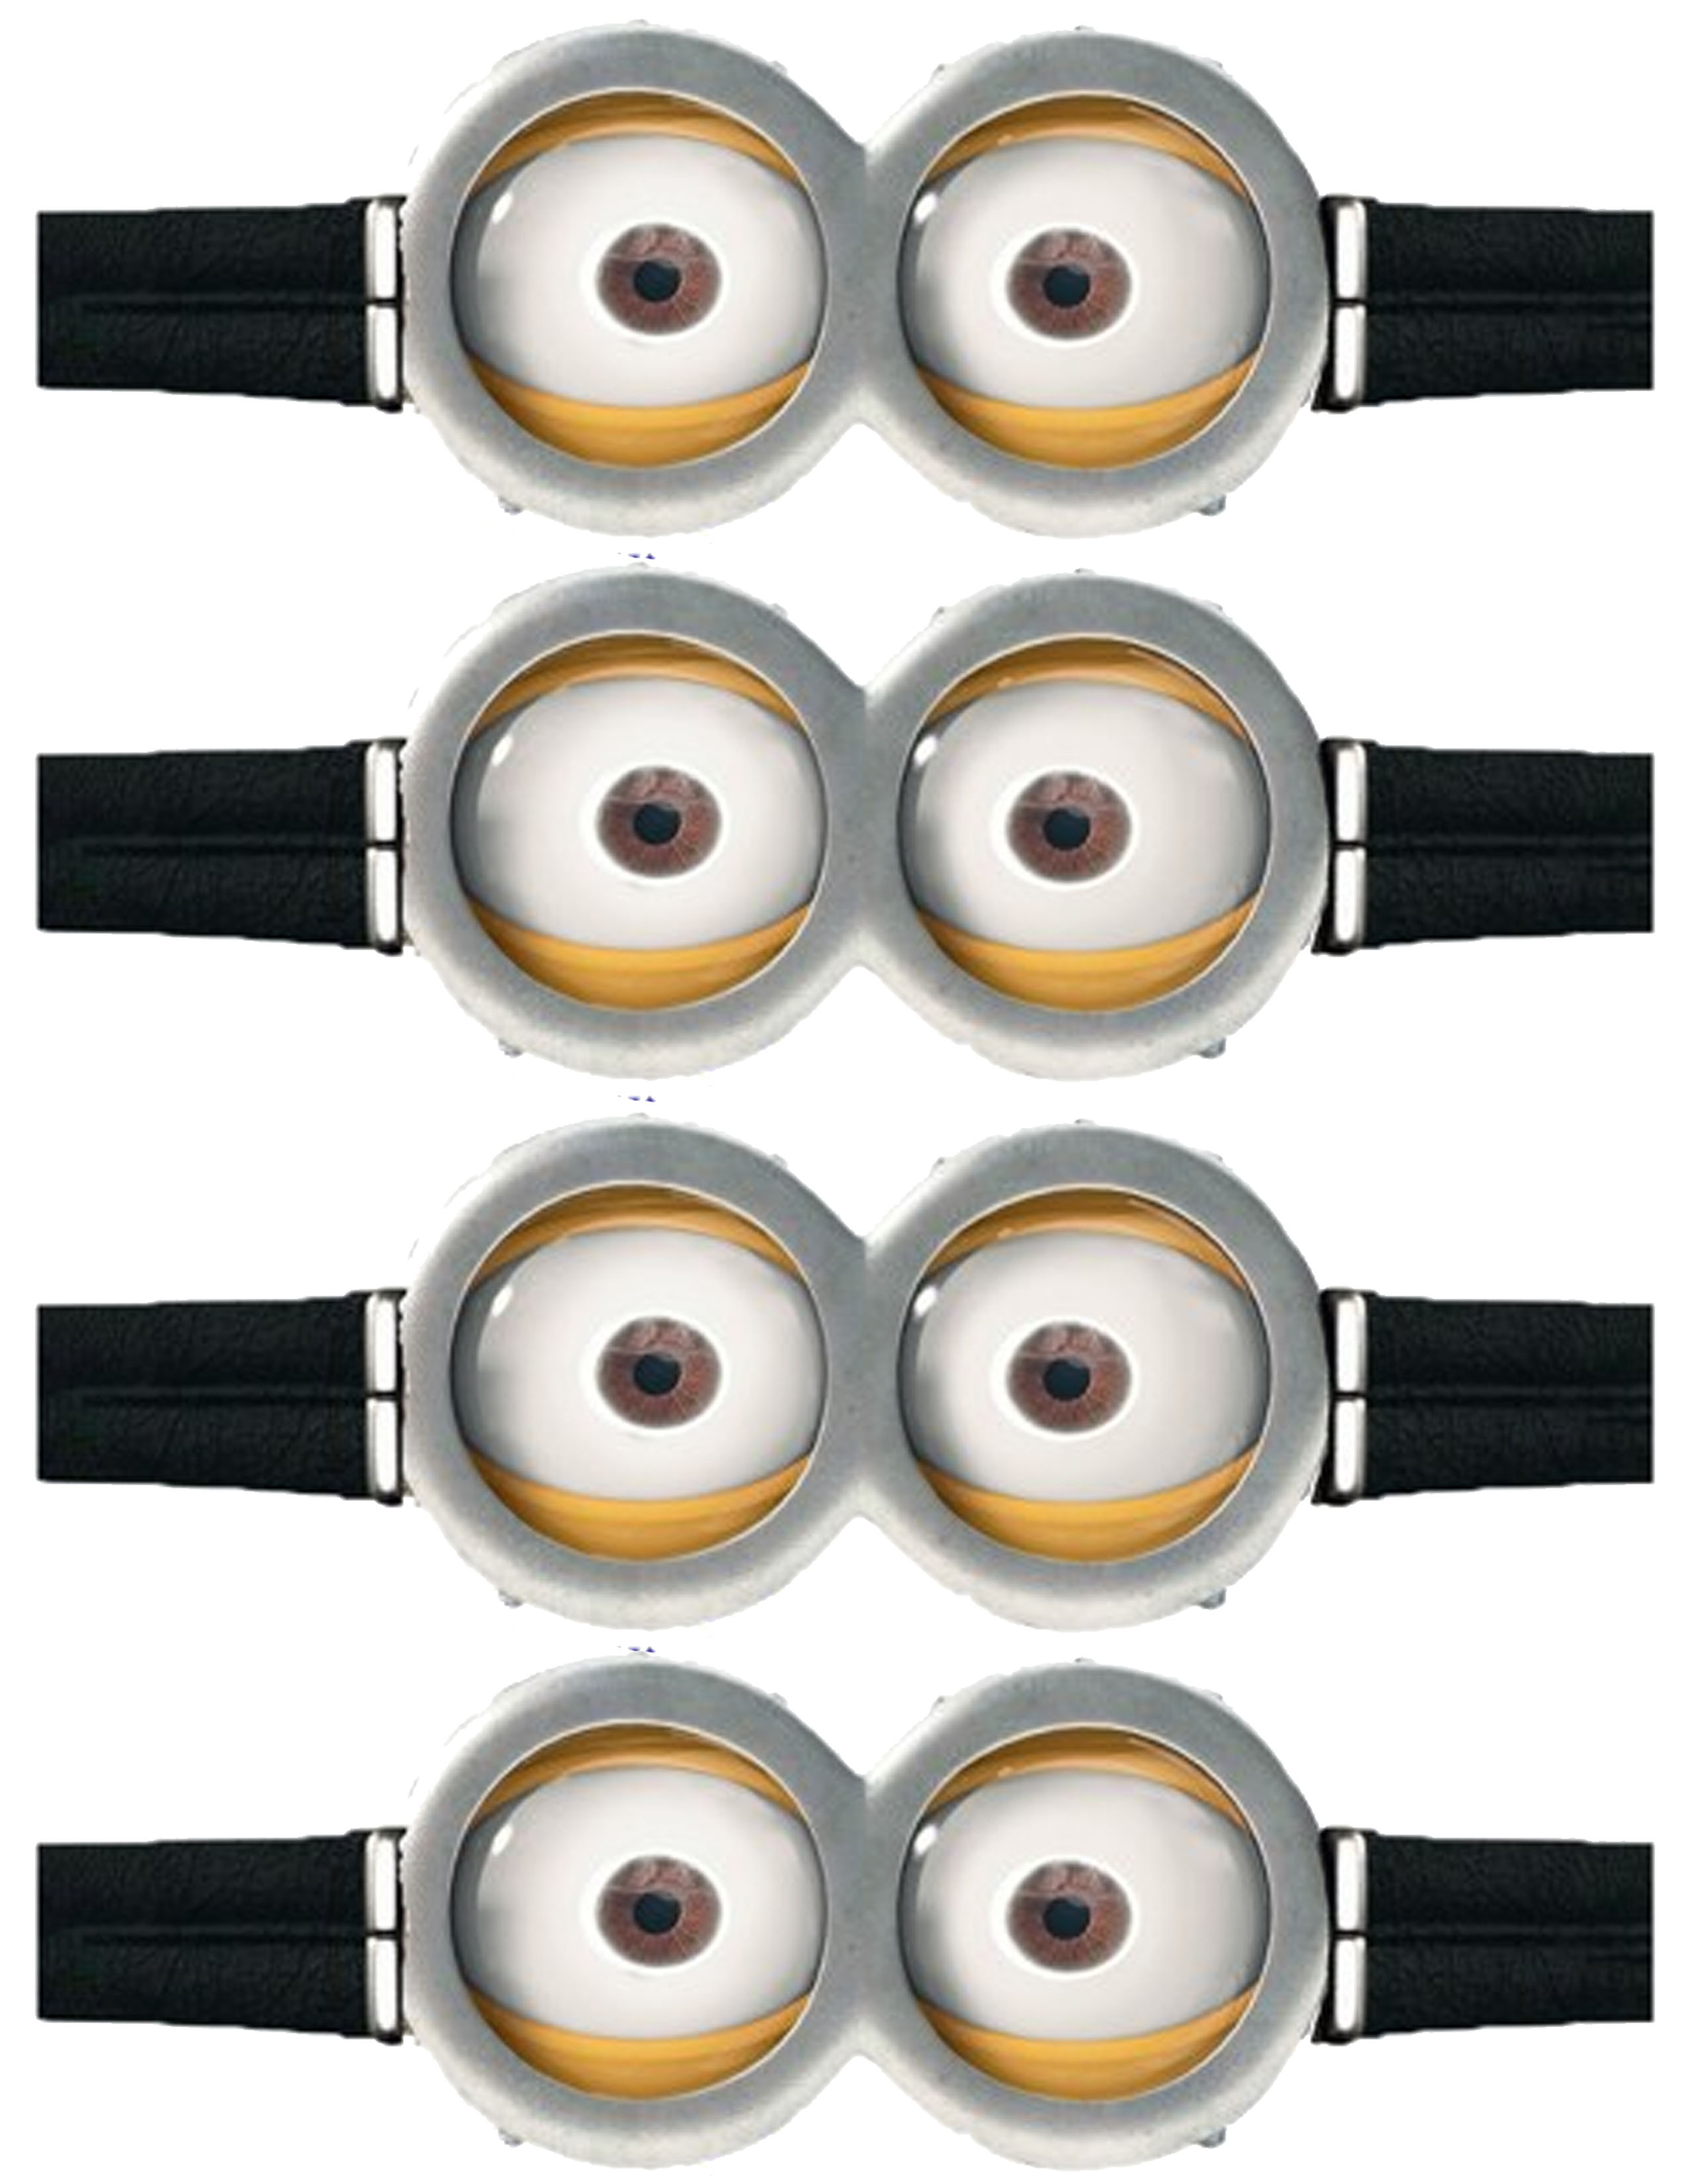 5 Images of Printable Minion Goggles